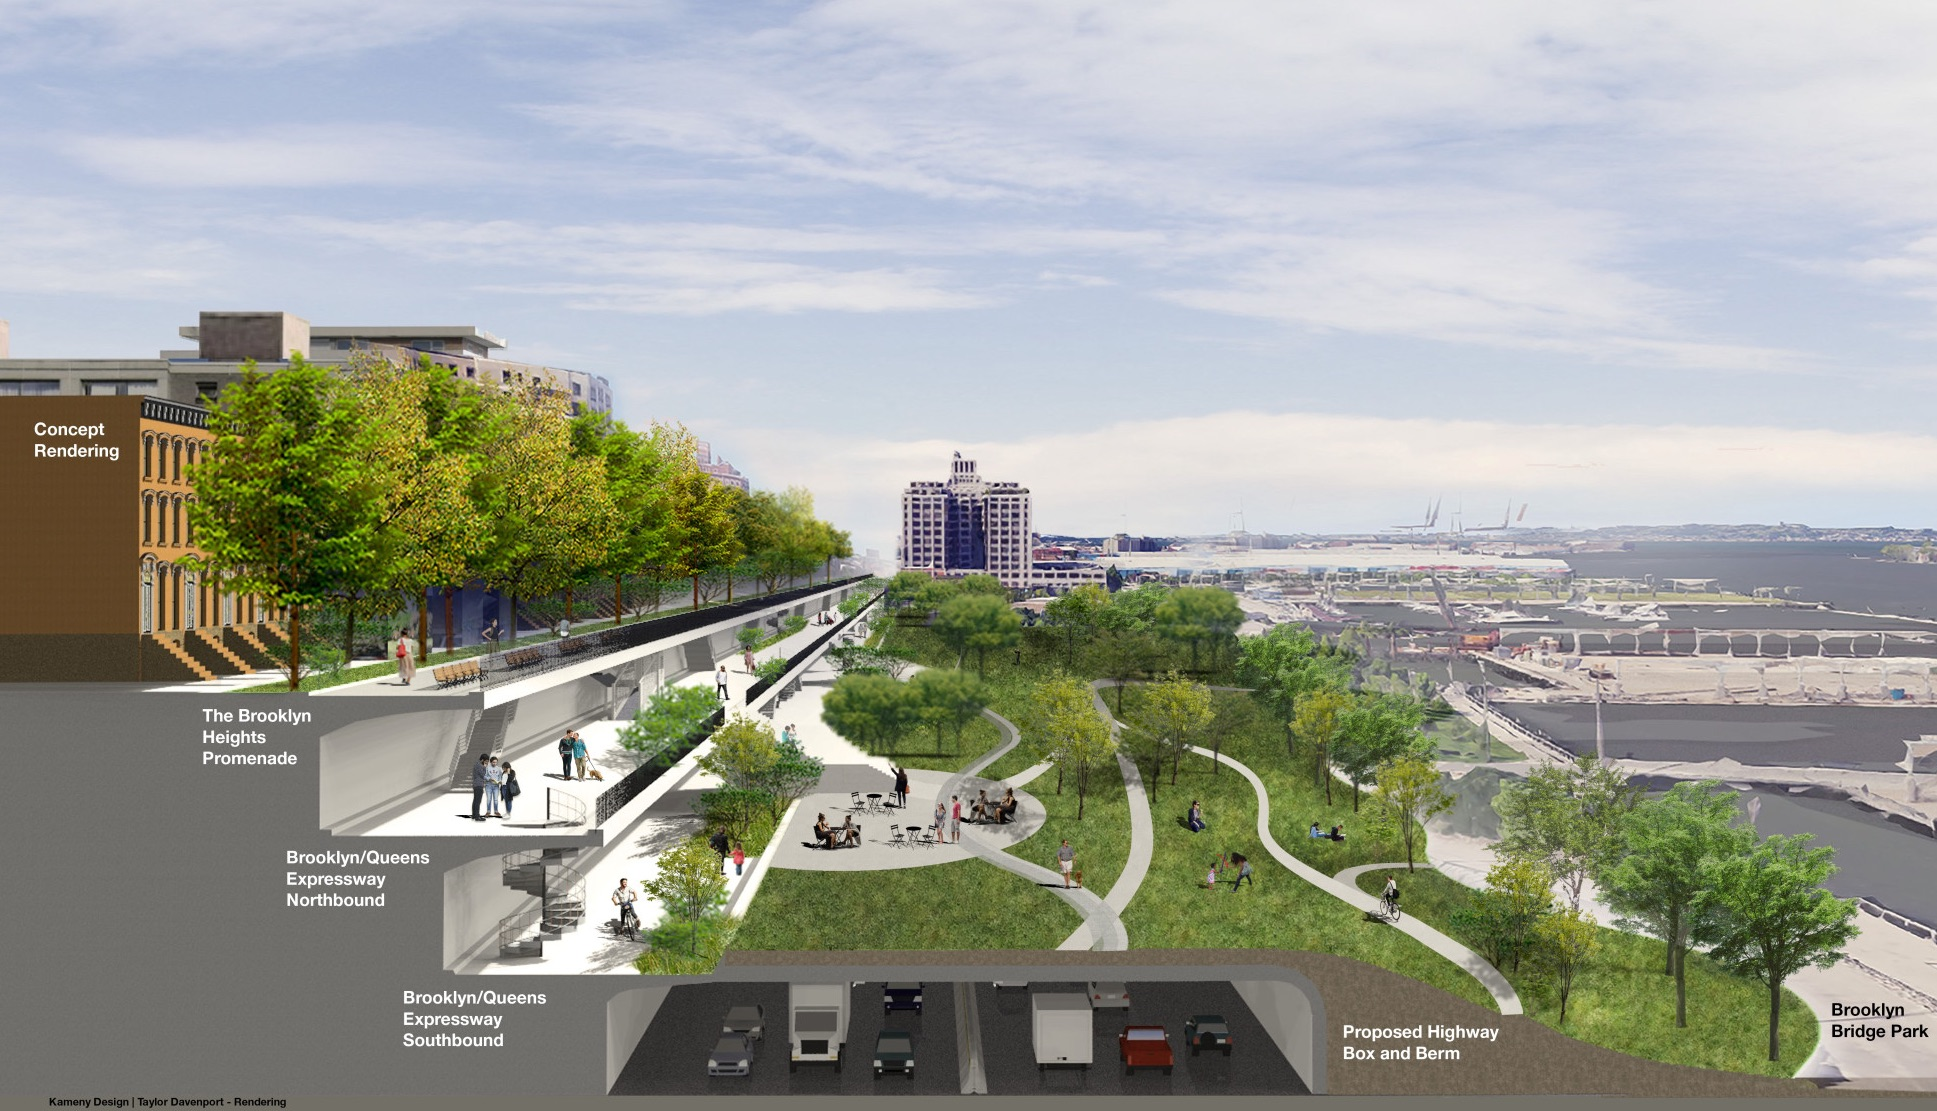 Linear park and aboveground tunnel proposed as fix for BQE problems